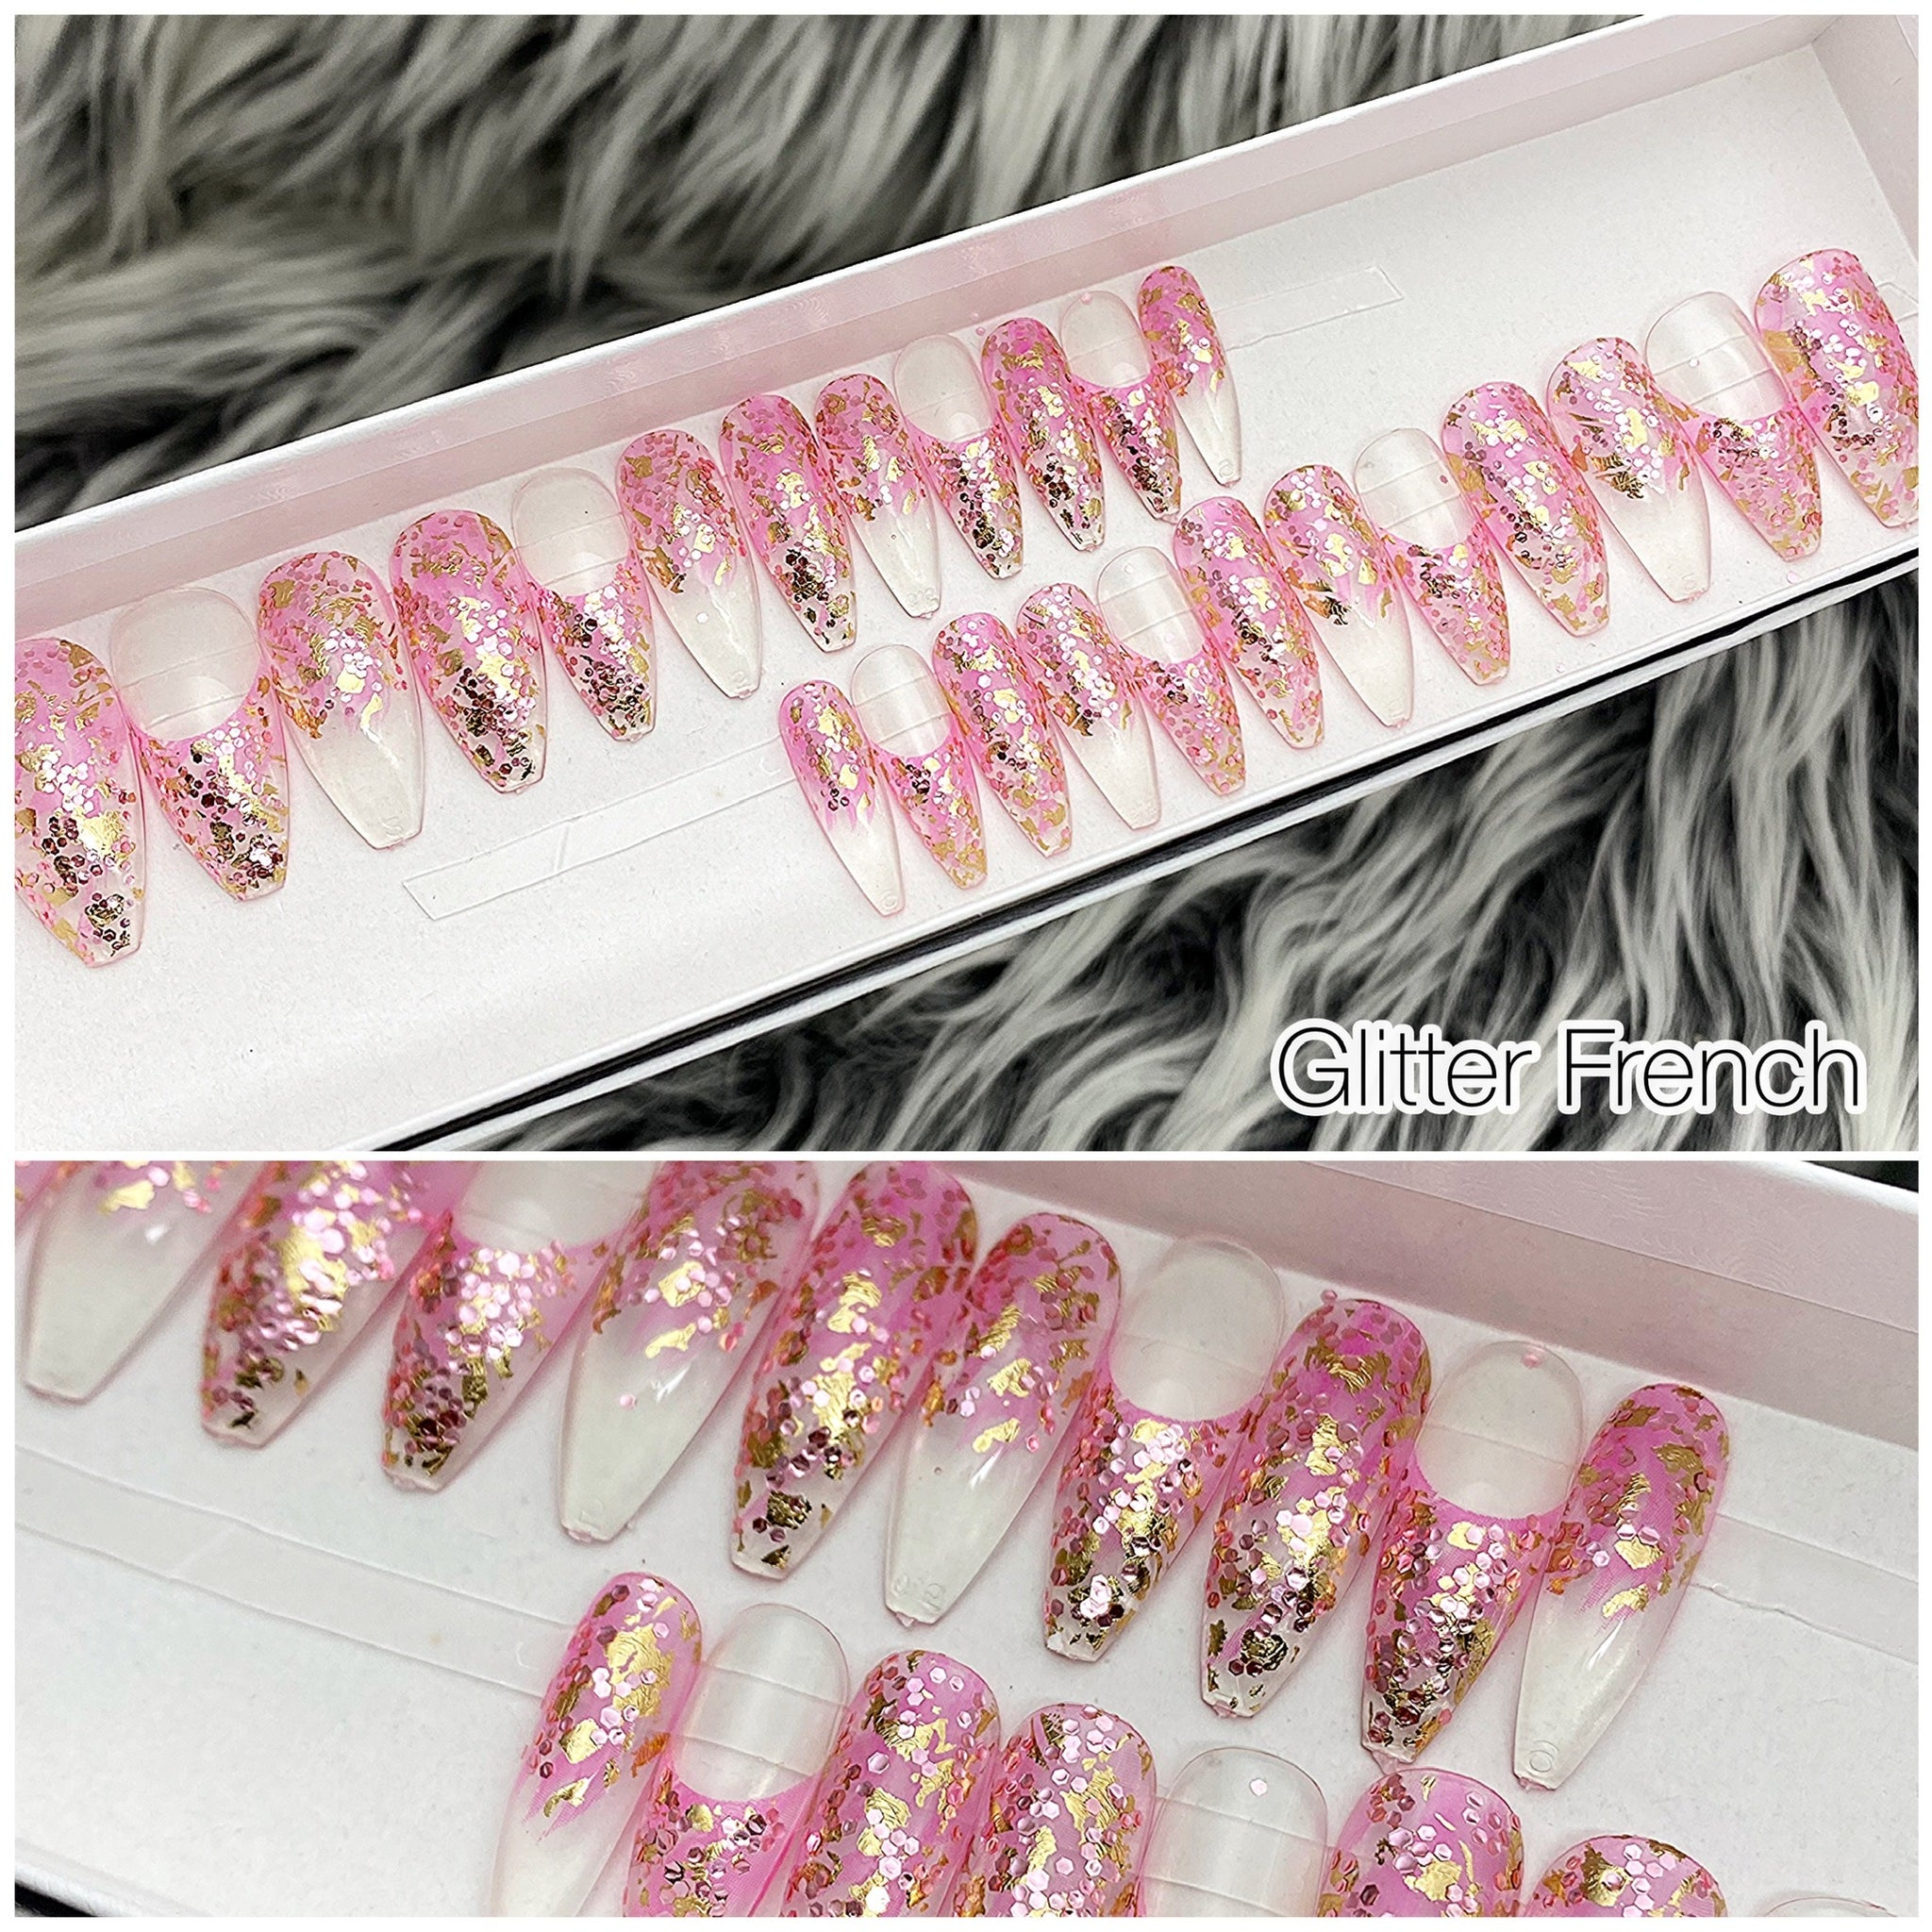 INSTANT GLAM- PINK GLITTER FRENCH TAPERED LONG COFFIN PRESS ON NAIL SET